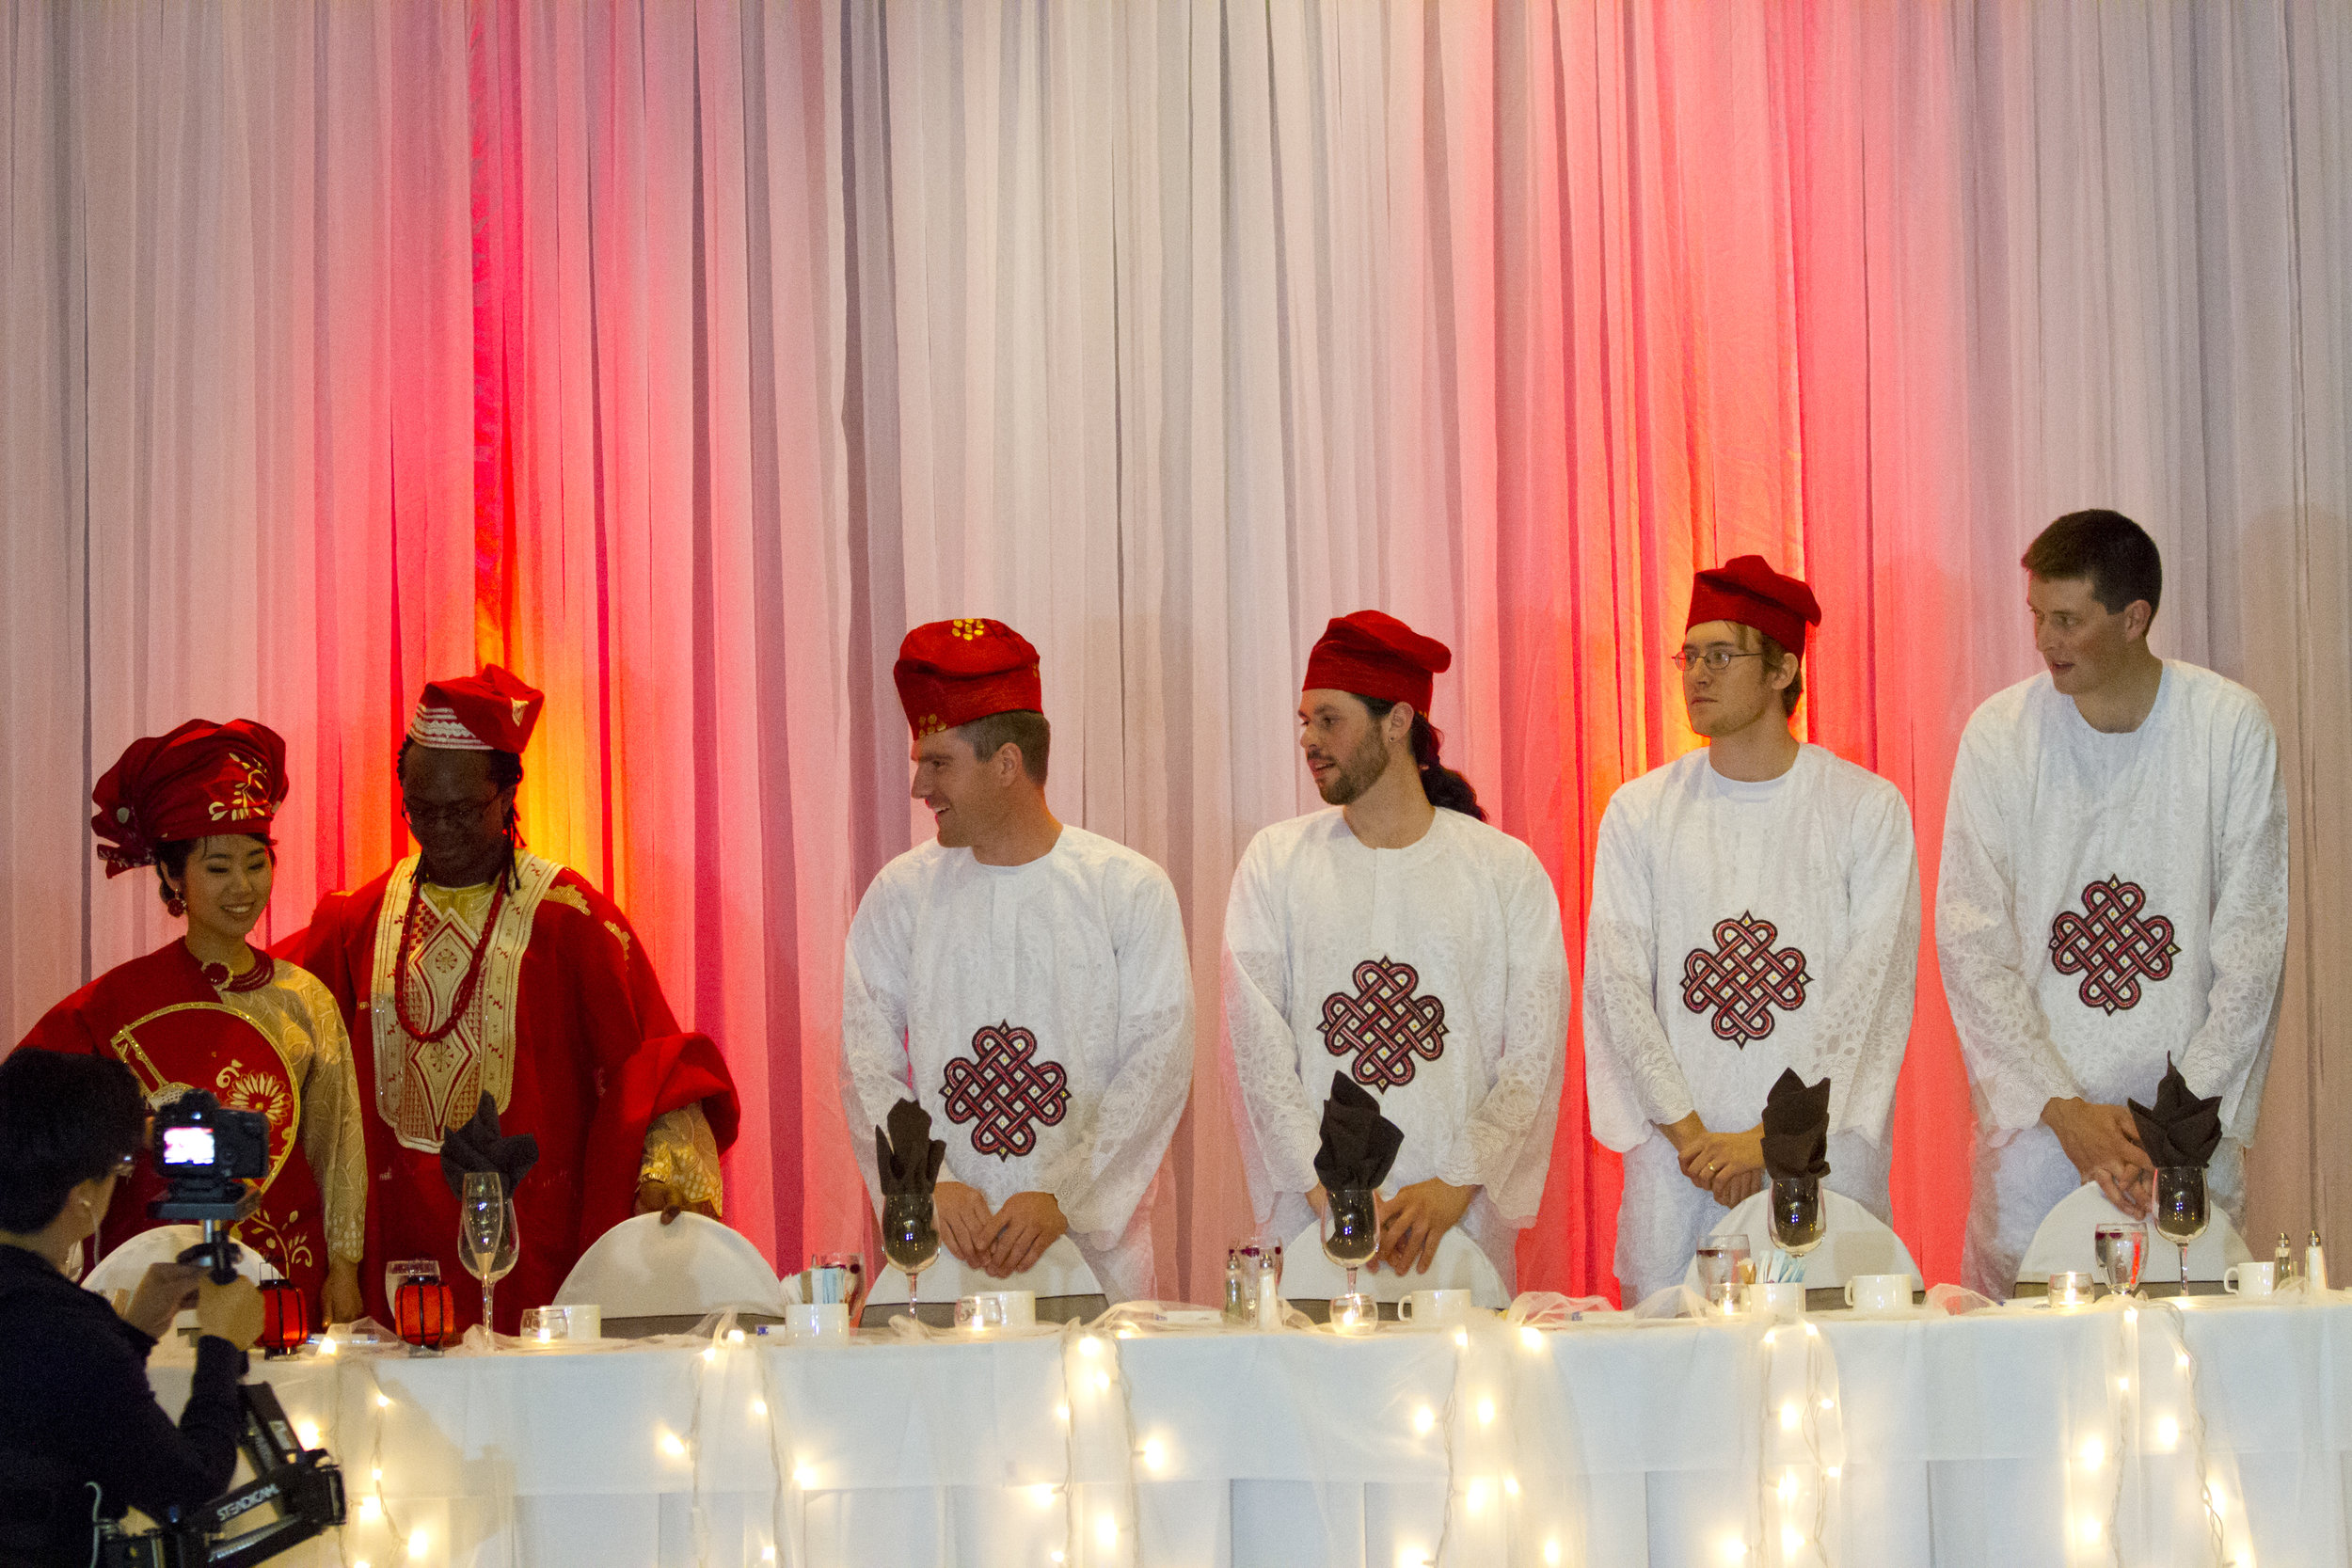 For the reception - the groomsmen wore African attires